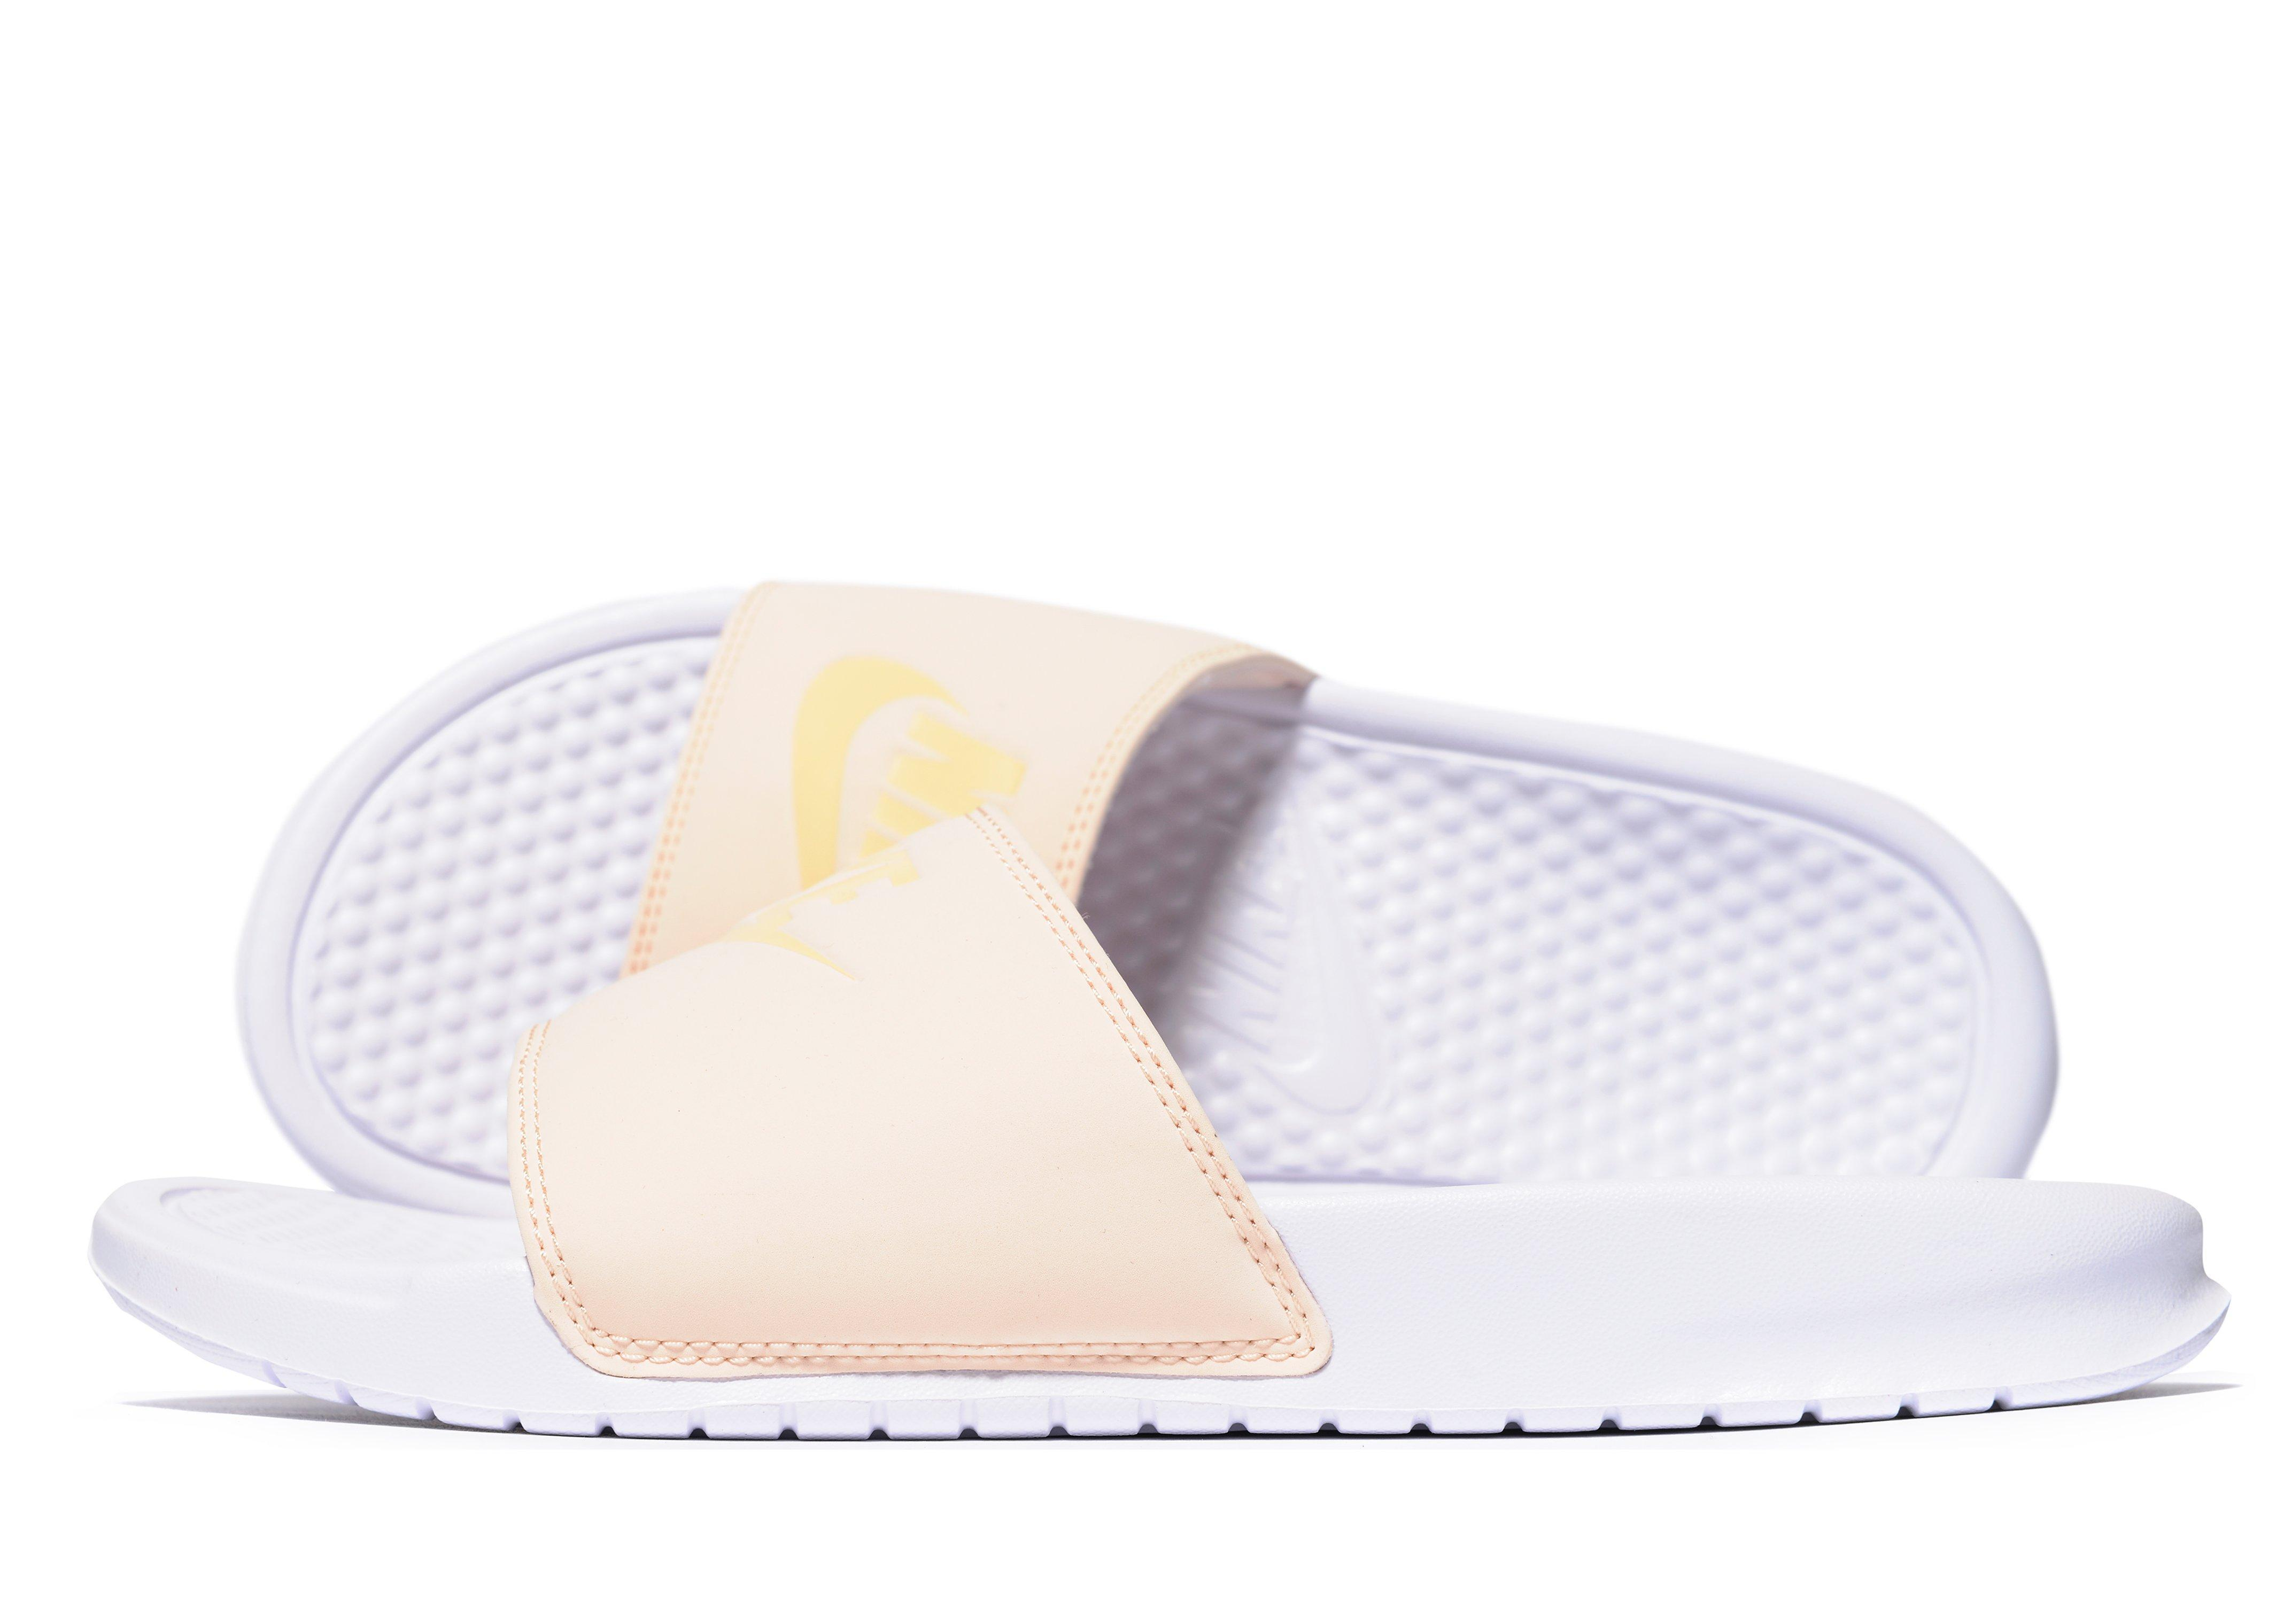 02de4579f935 ... italy nike benassi just do it slides save 50.0 lyst dfdc9 7f253